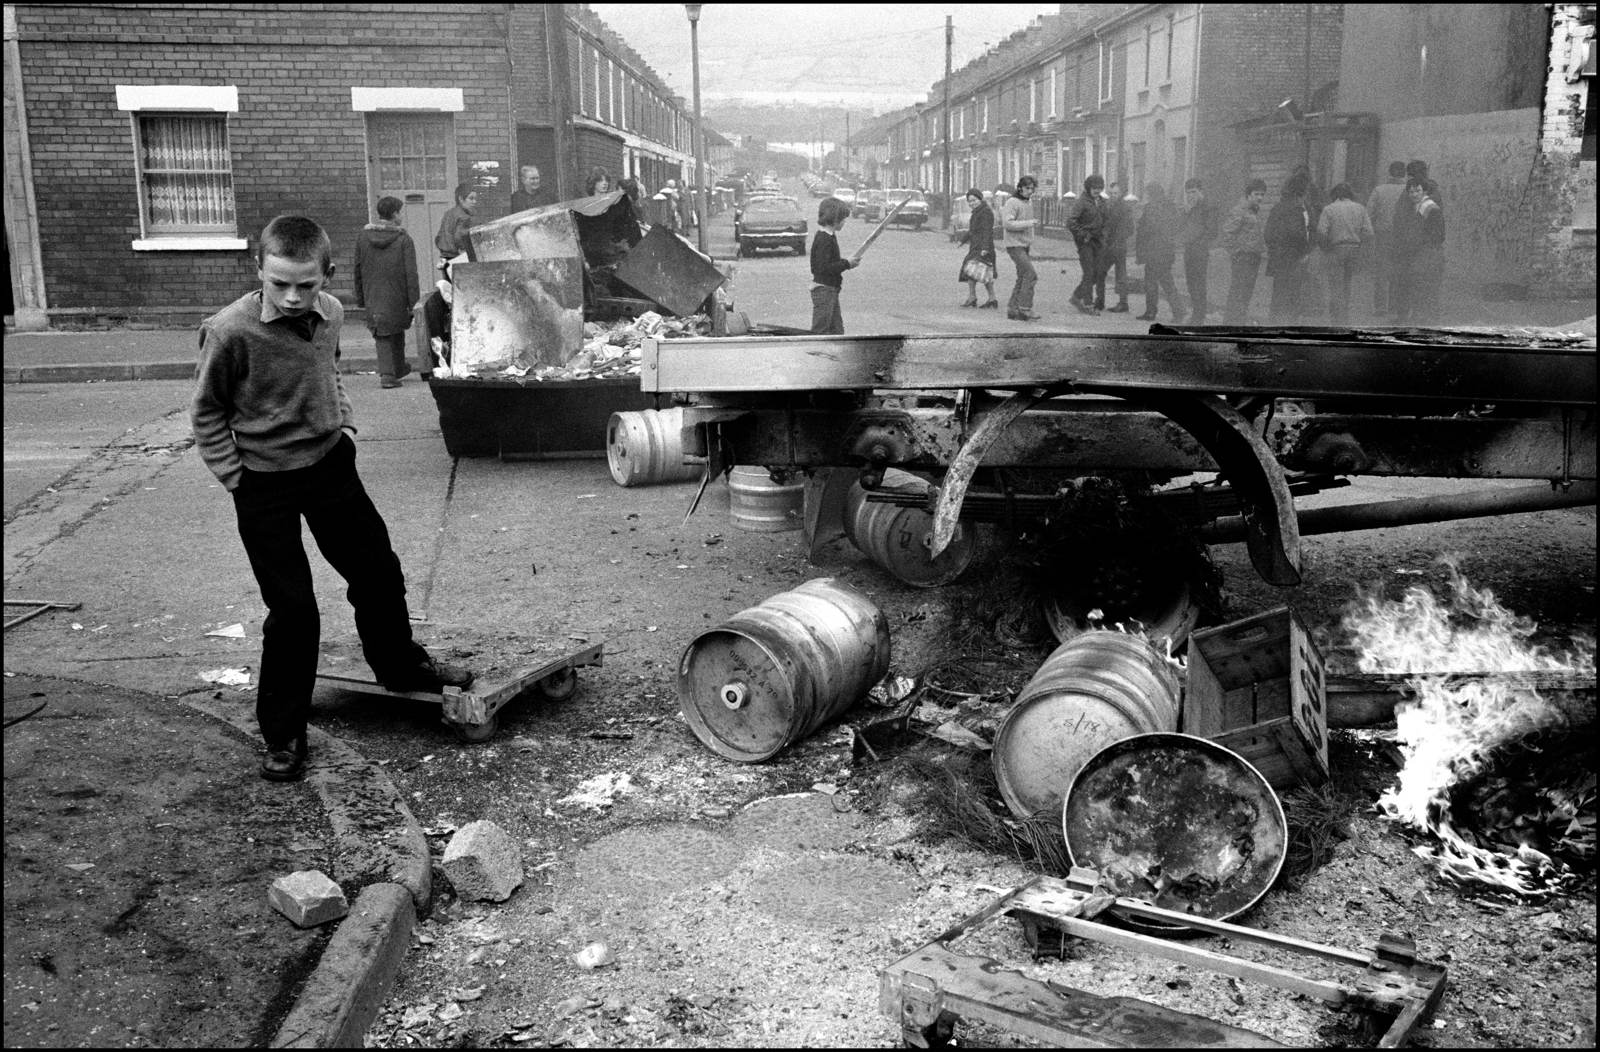 Wreckage forming a barricade after a riot, Belfast, Northern Ireland, 1981